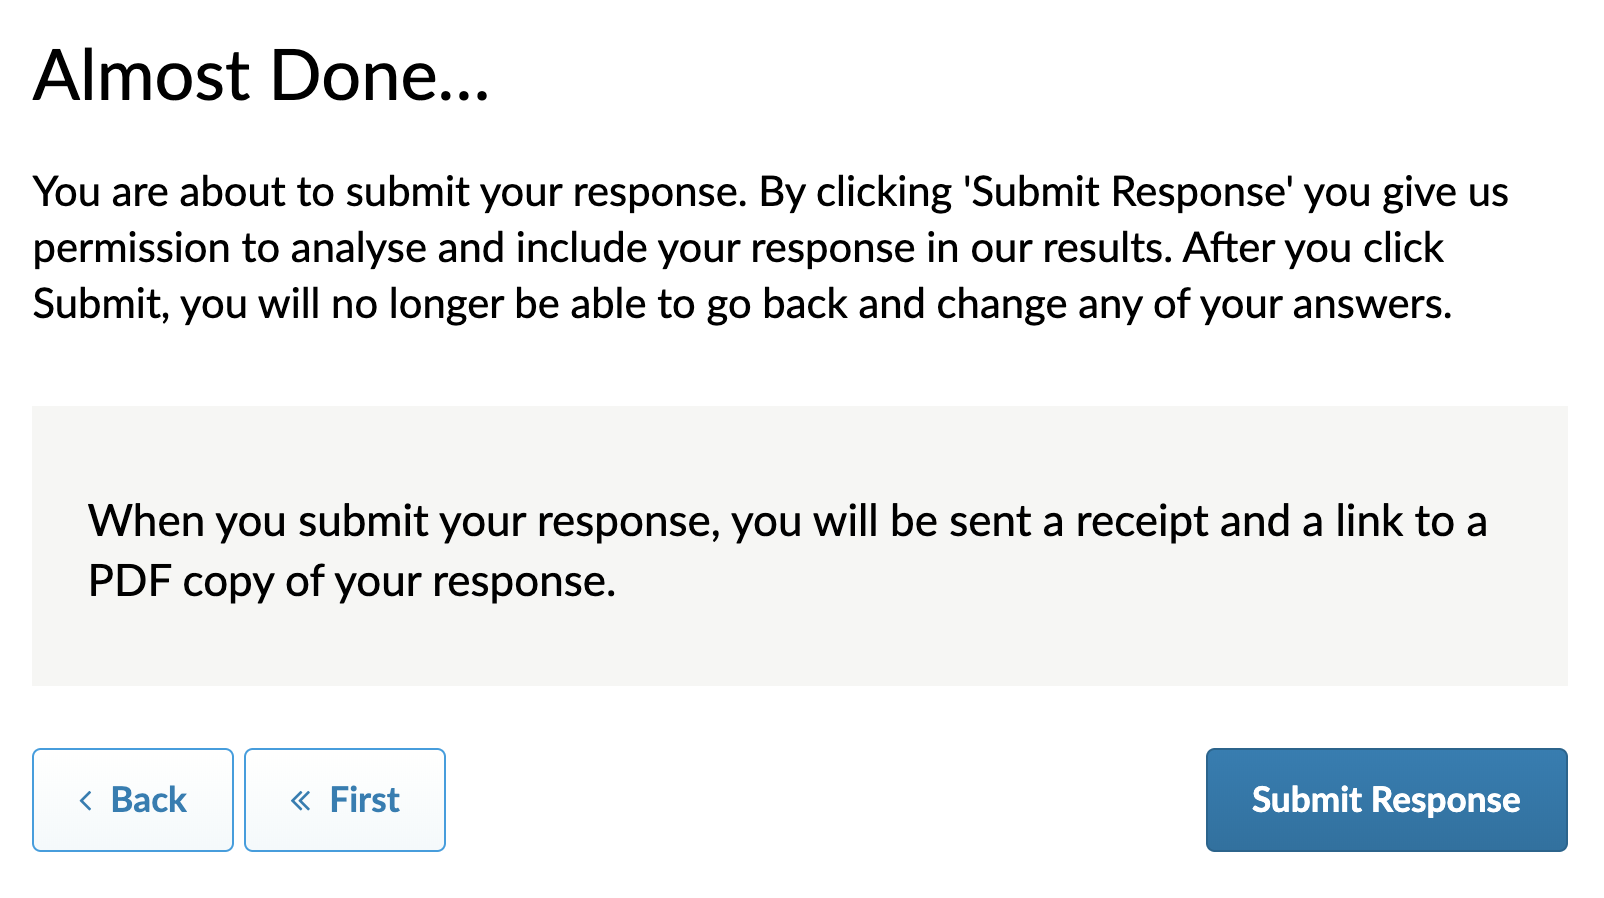 Almost Done screen when email question is used states: When you submit your response, you will be sent a receipt and a link to a PDF copy of your response. Screenshot.